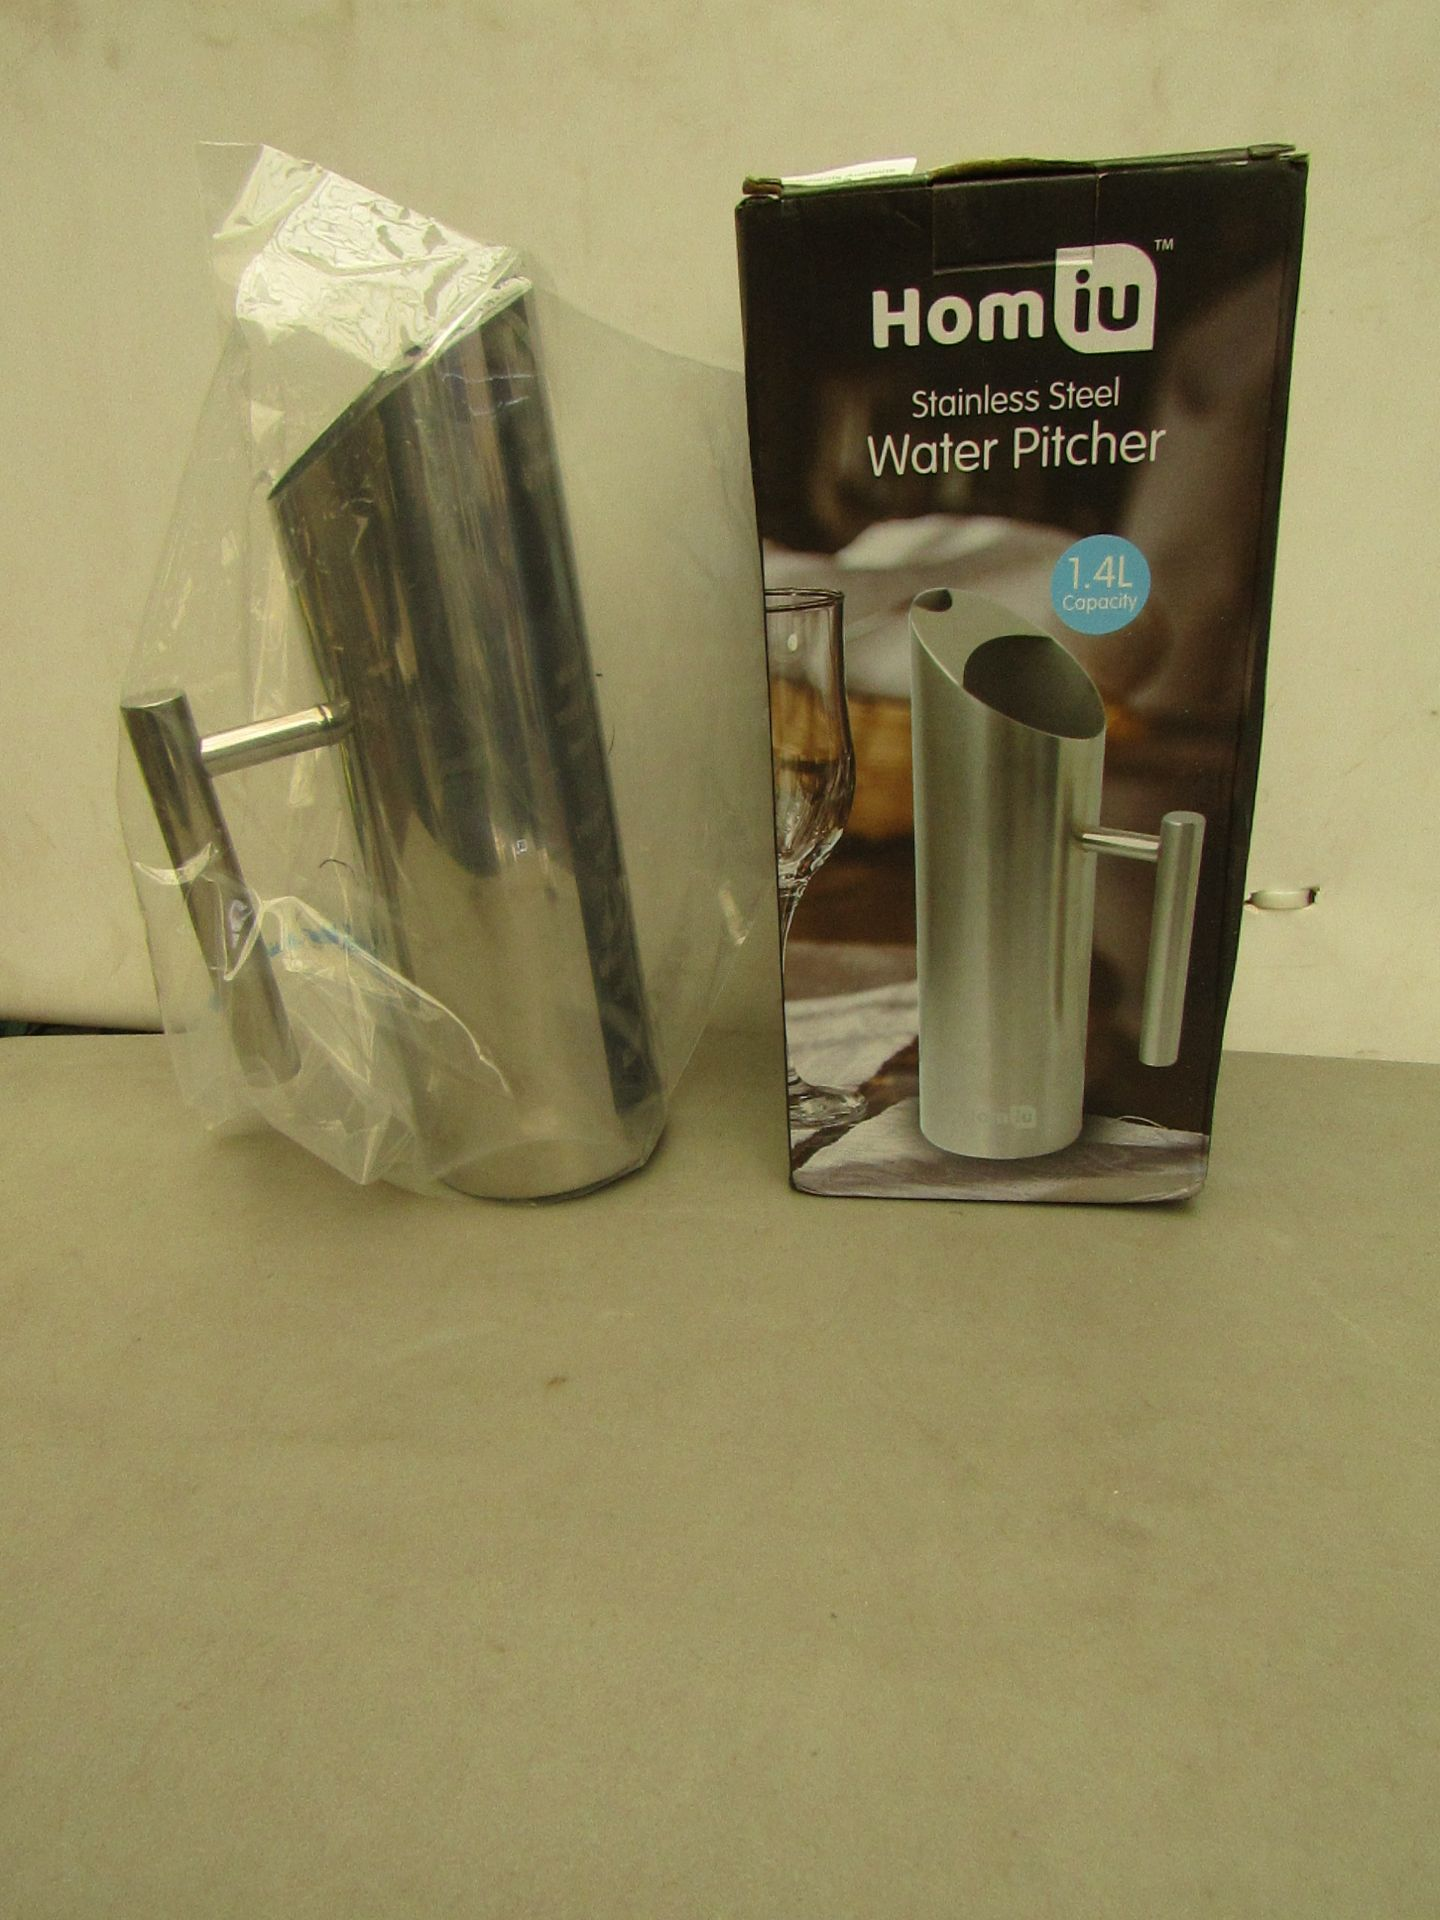 Lotto 28 - 2 x Homiu Stainless Steel Water Pitchers 1.4L